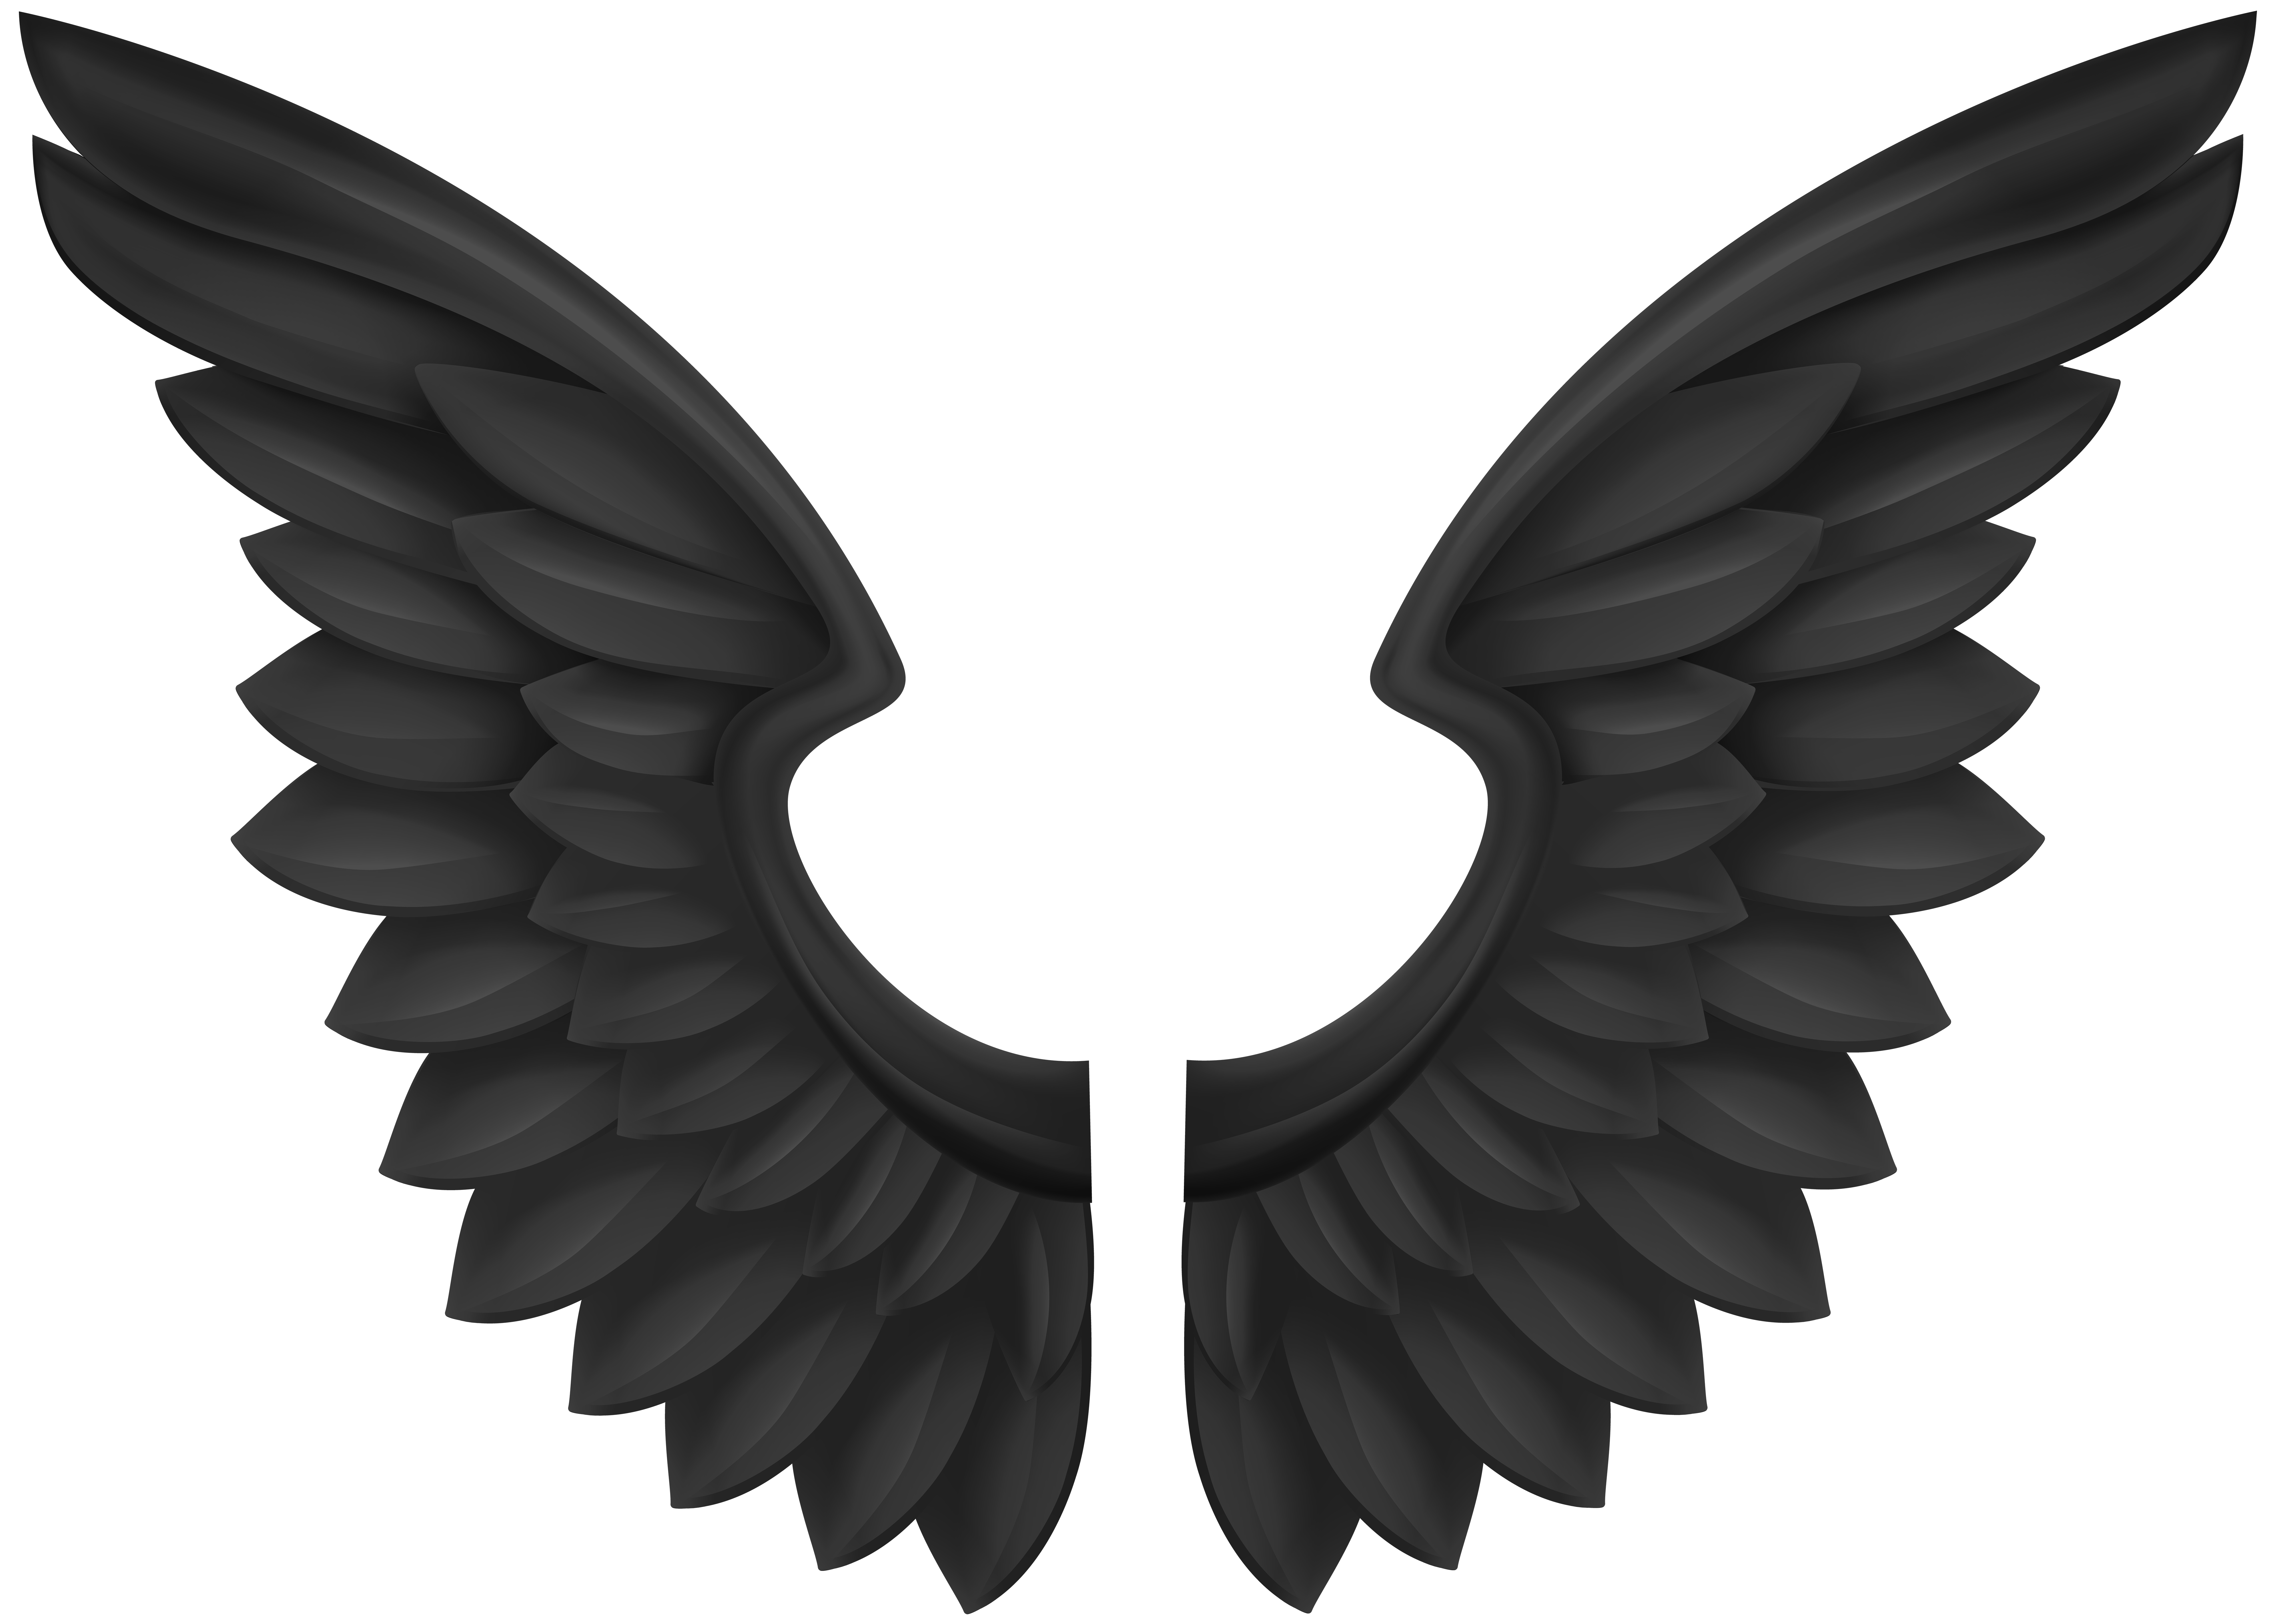 Wings Transparent Clipart.